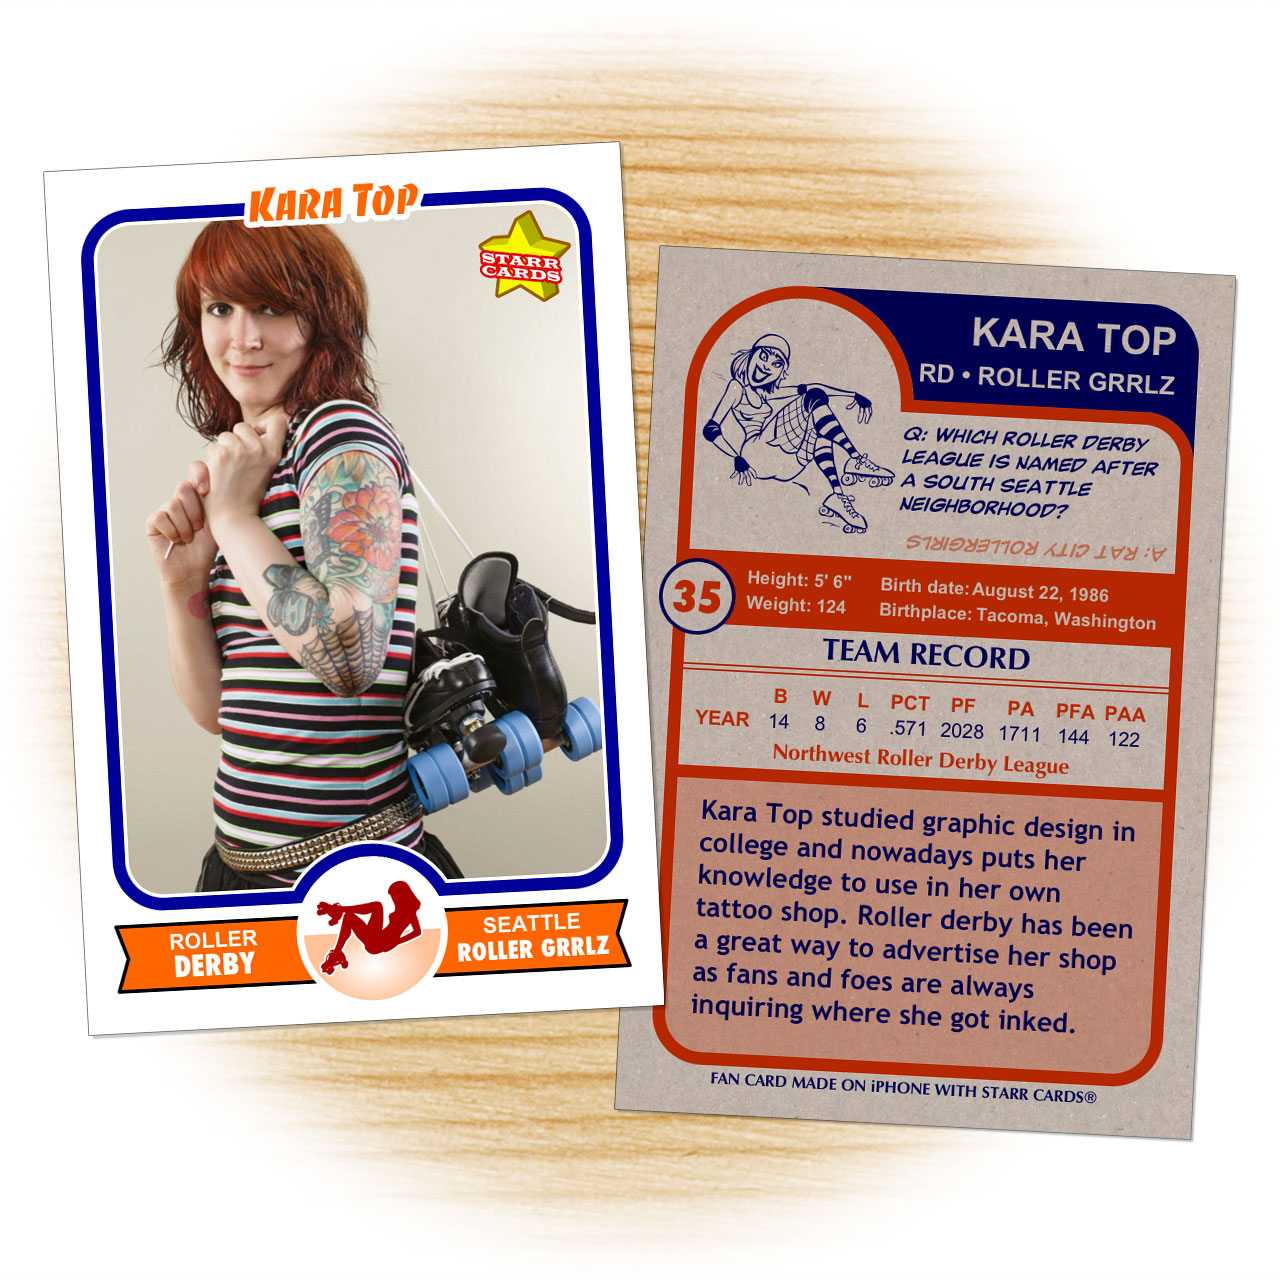 Roller derby card template from Starr Cards Roller Derby Card Maker.